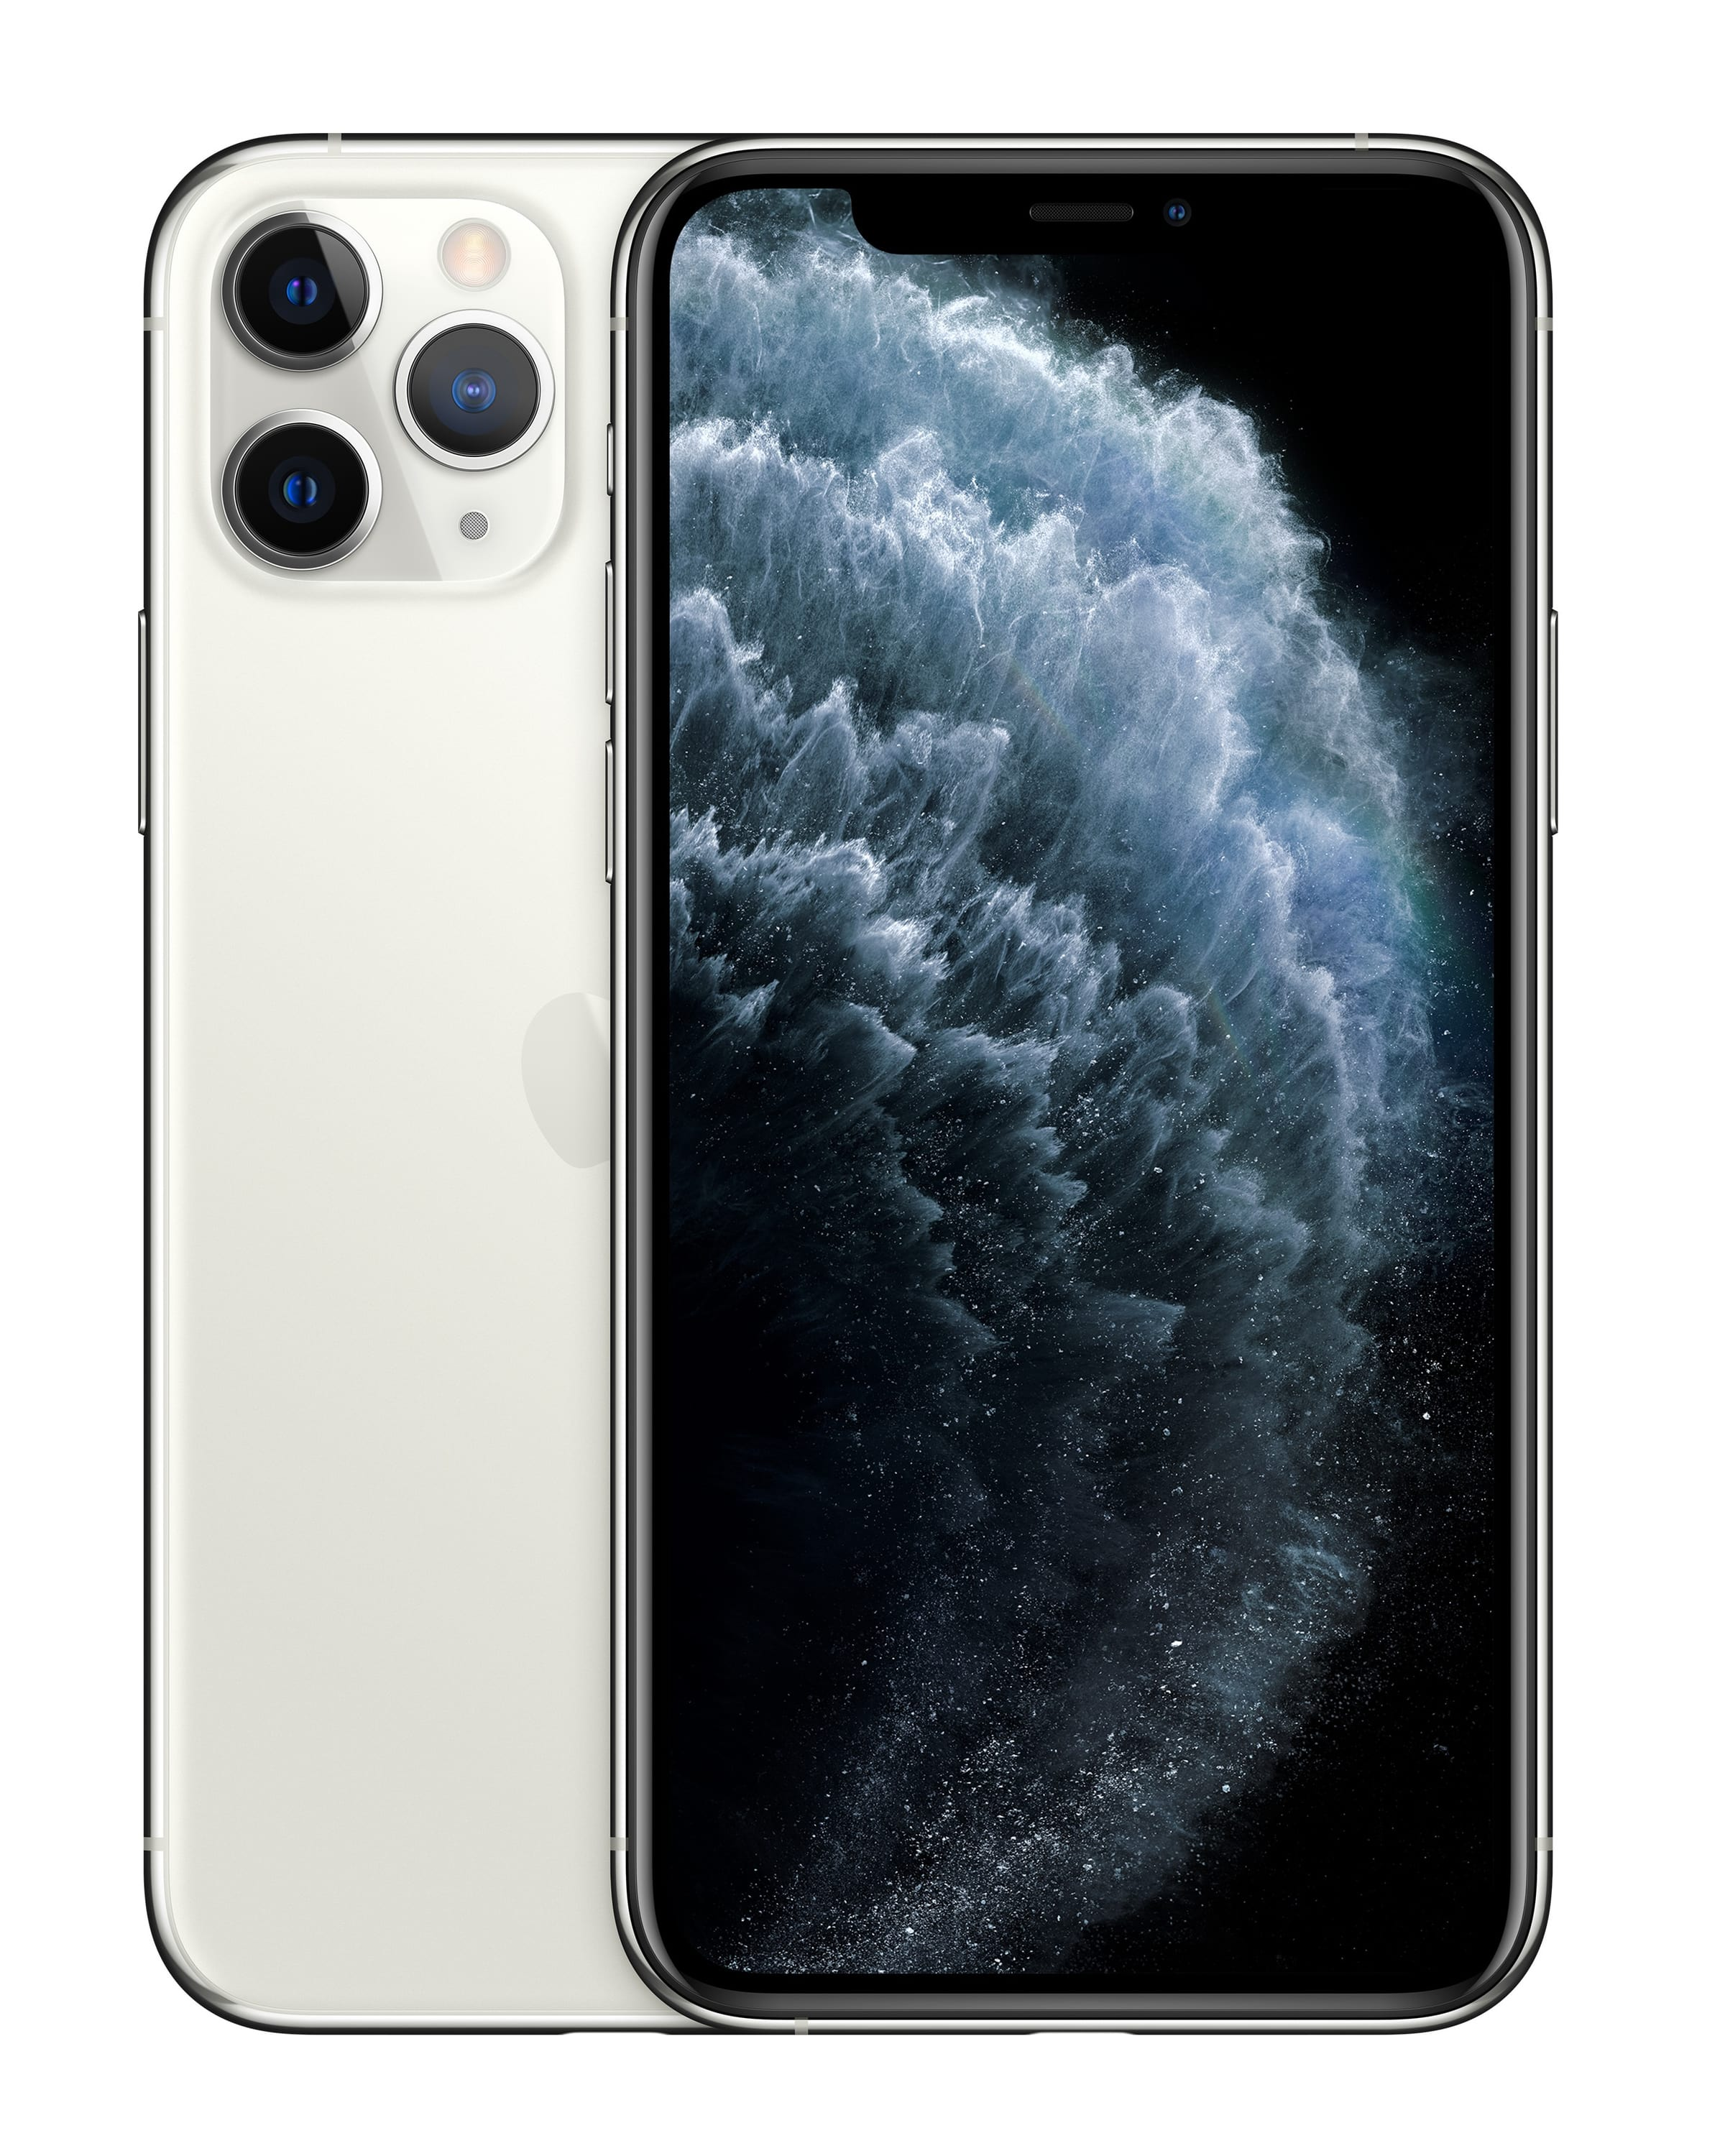 Apple iPhone 11 Pro Smartphone 14,7 cm (5.8 Zoll) 64 GB iOS 12 MP Dreifach-Kamera Dual-SIM für 999,00 Euro